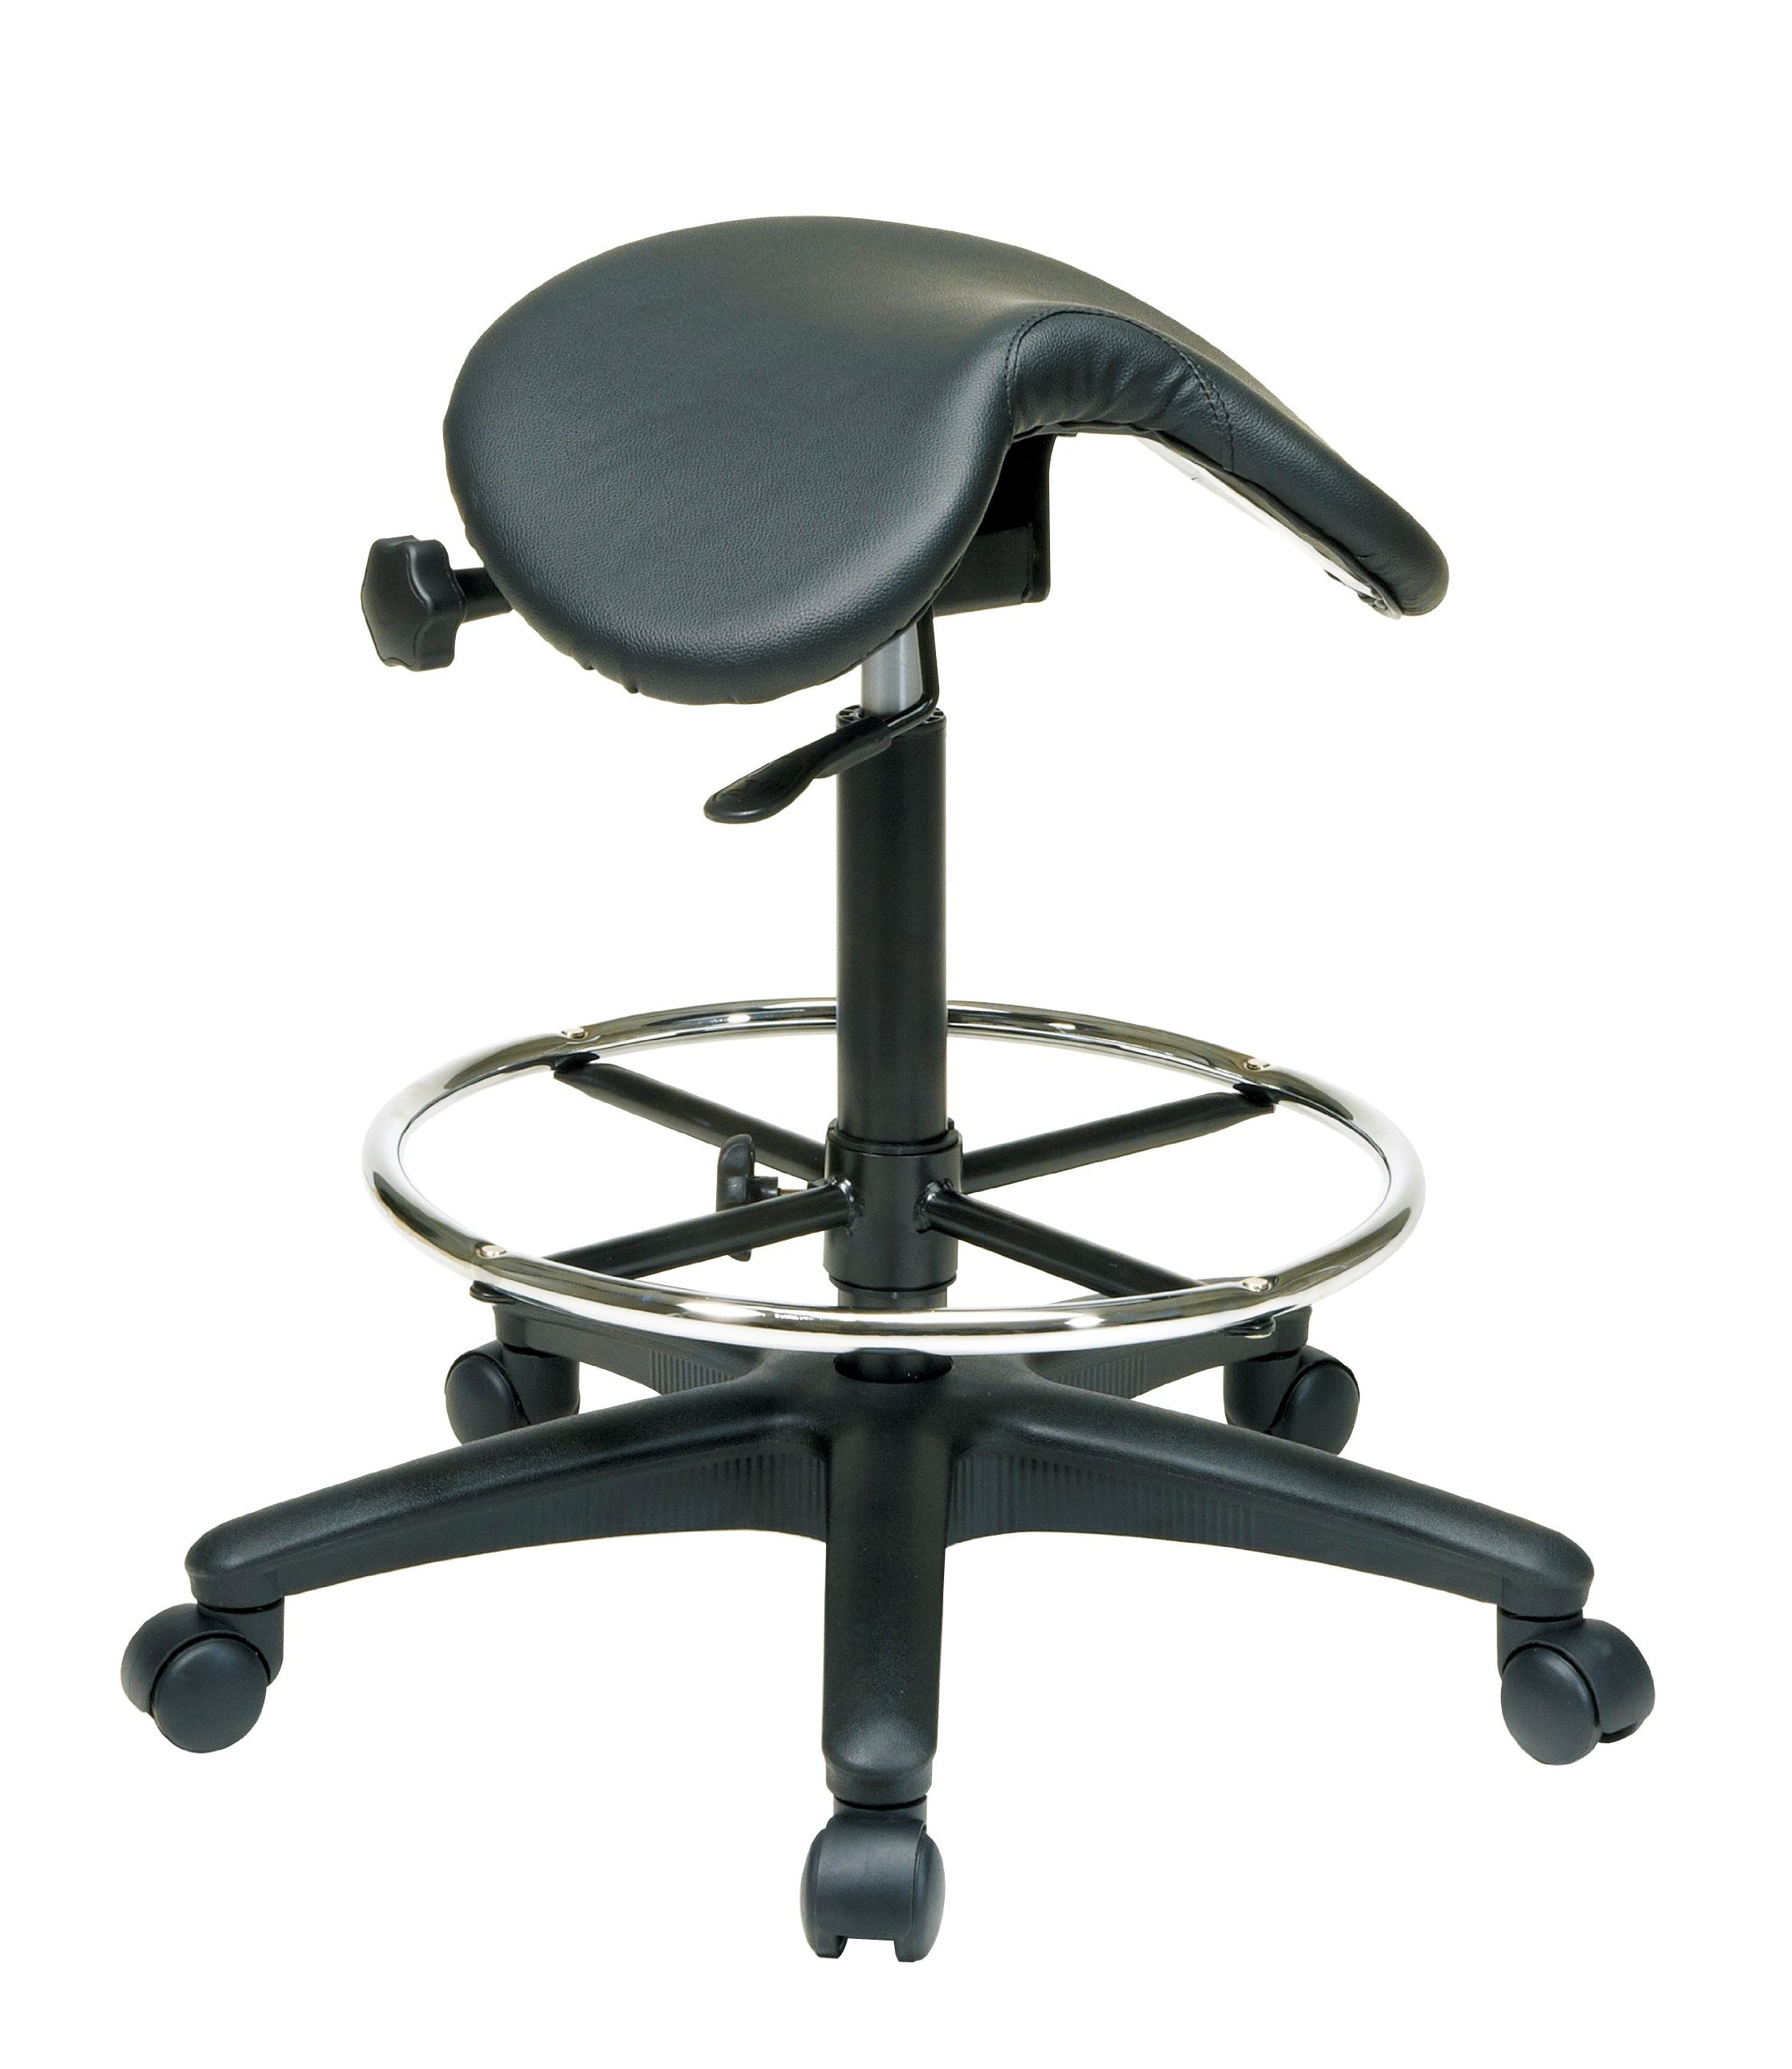 Office Star Backless Office Stool with Saddle Seat and Angle Adjustment, Black, 25 to 35-Inch Adjustable Height